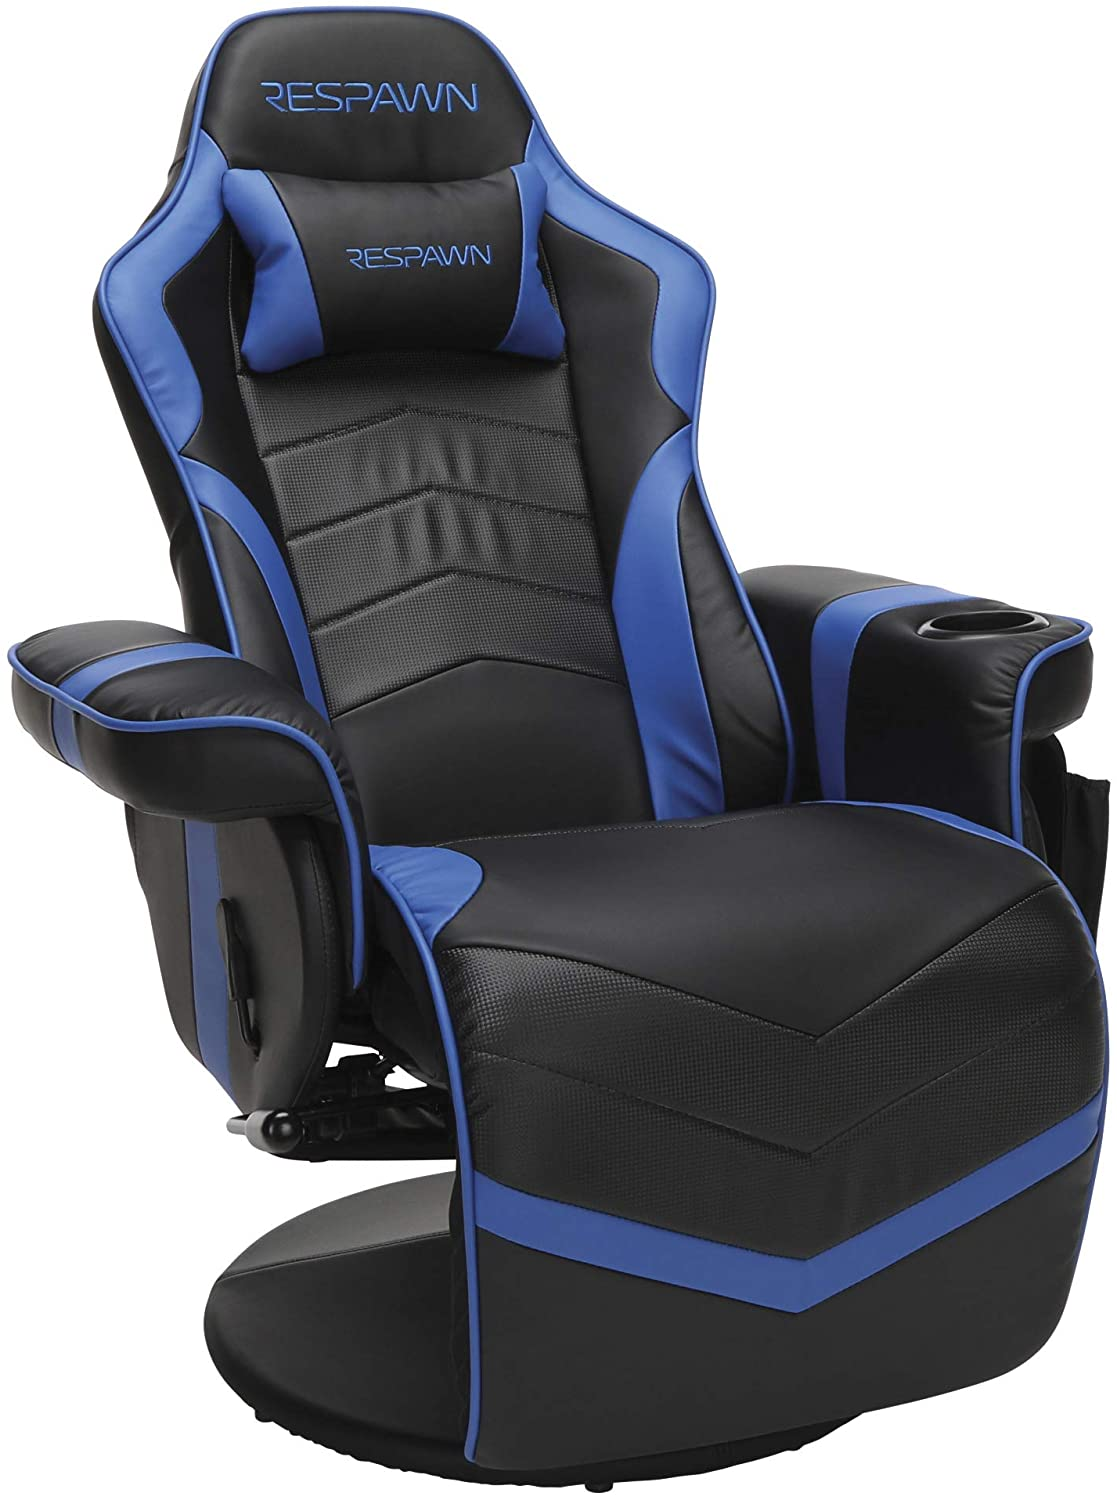 RESPAWN-900 Reclining Gaming Chair